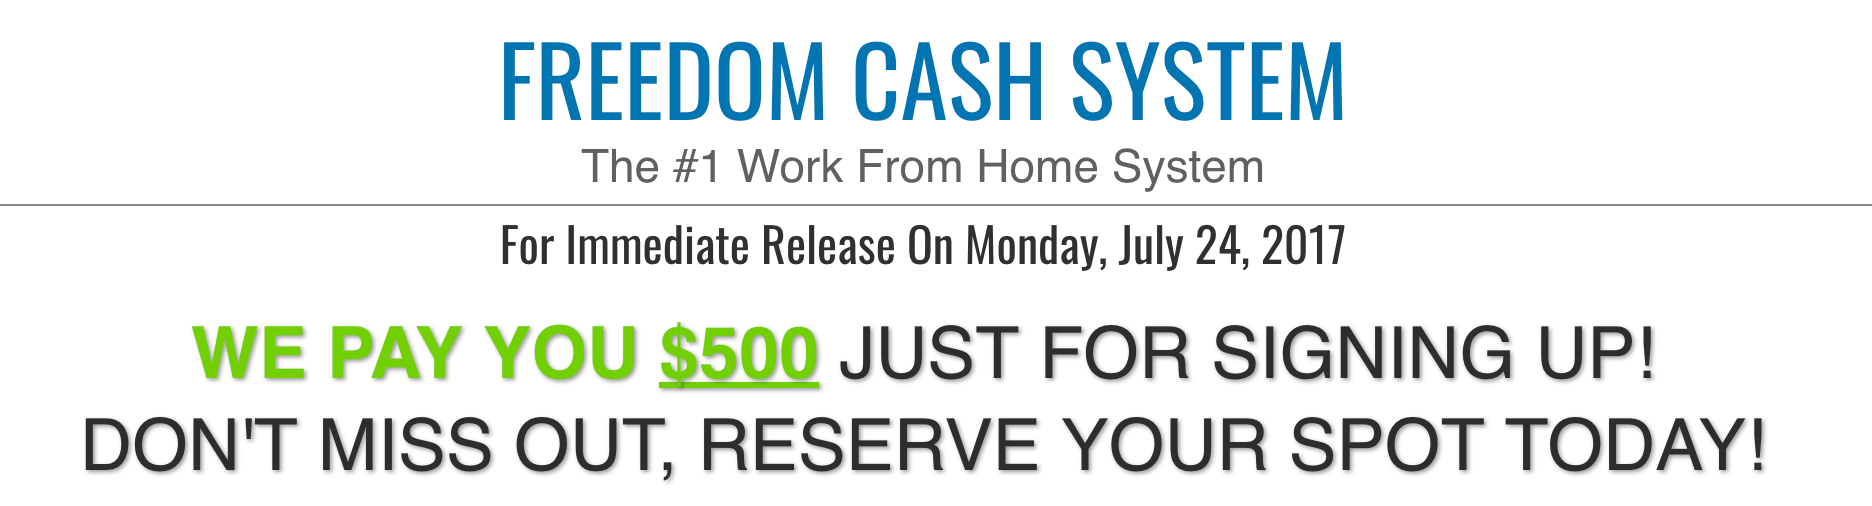 Freedom Cash System cash reward